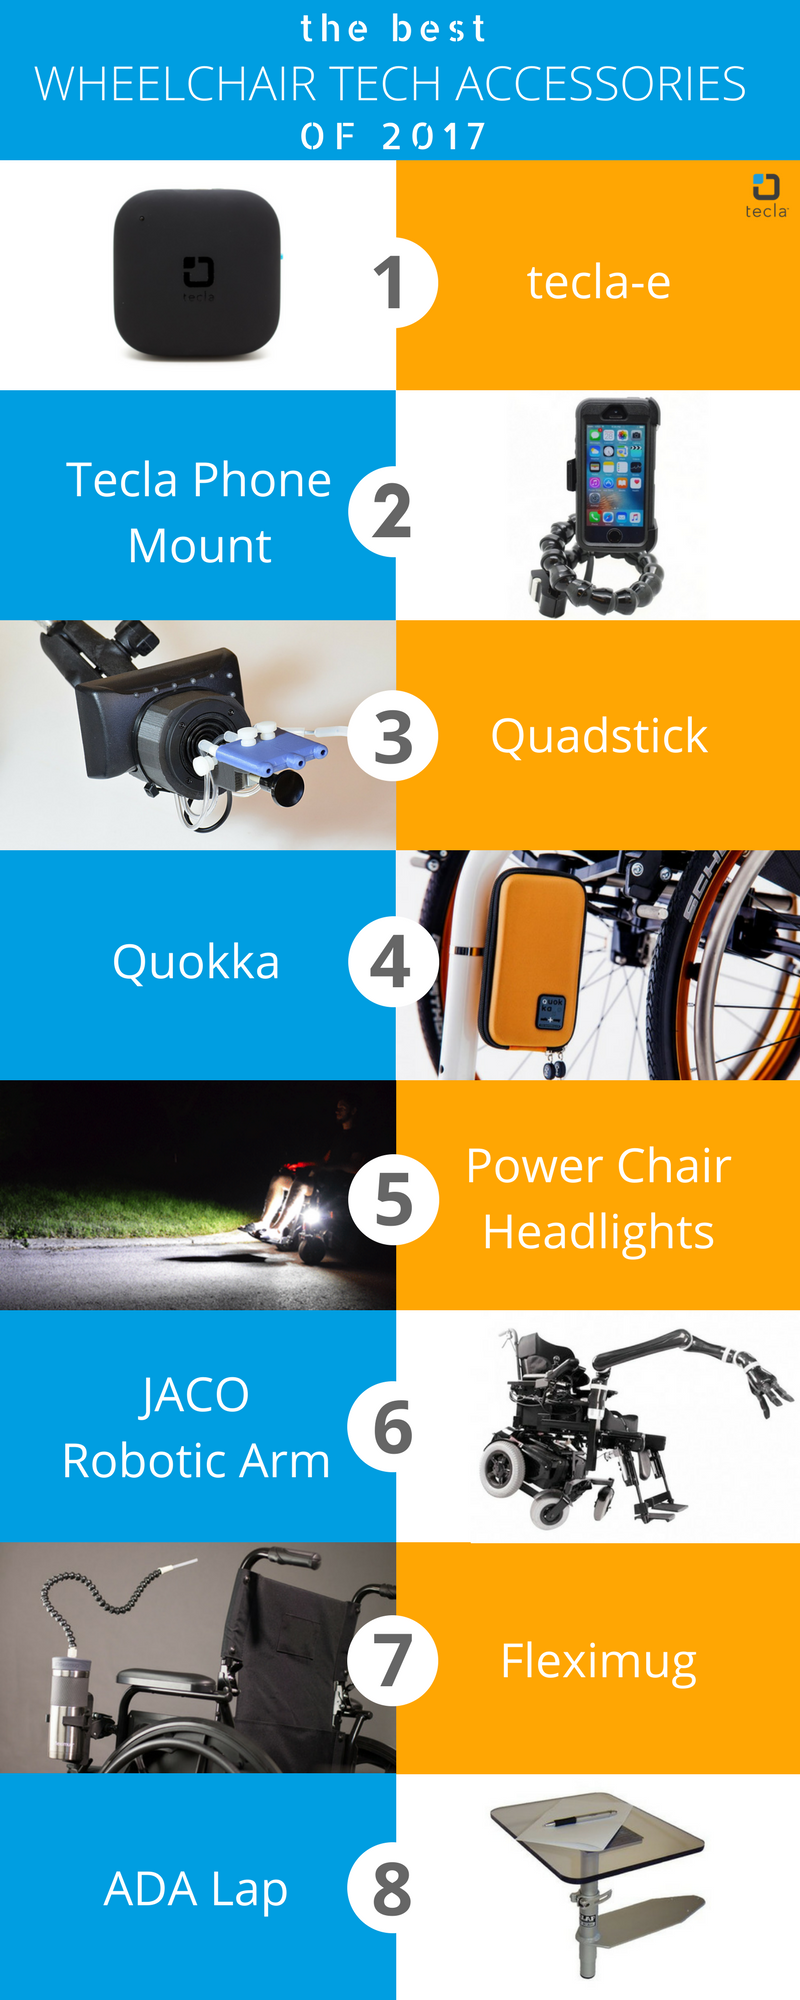 Graphic: the best wheelchair tech accessories of 2017